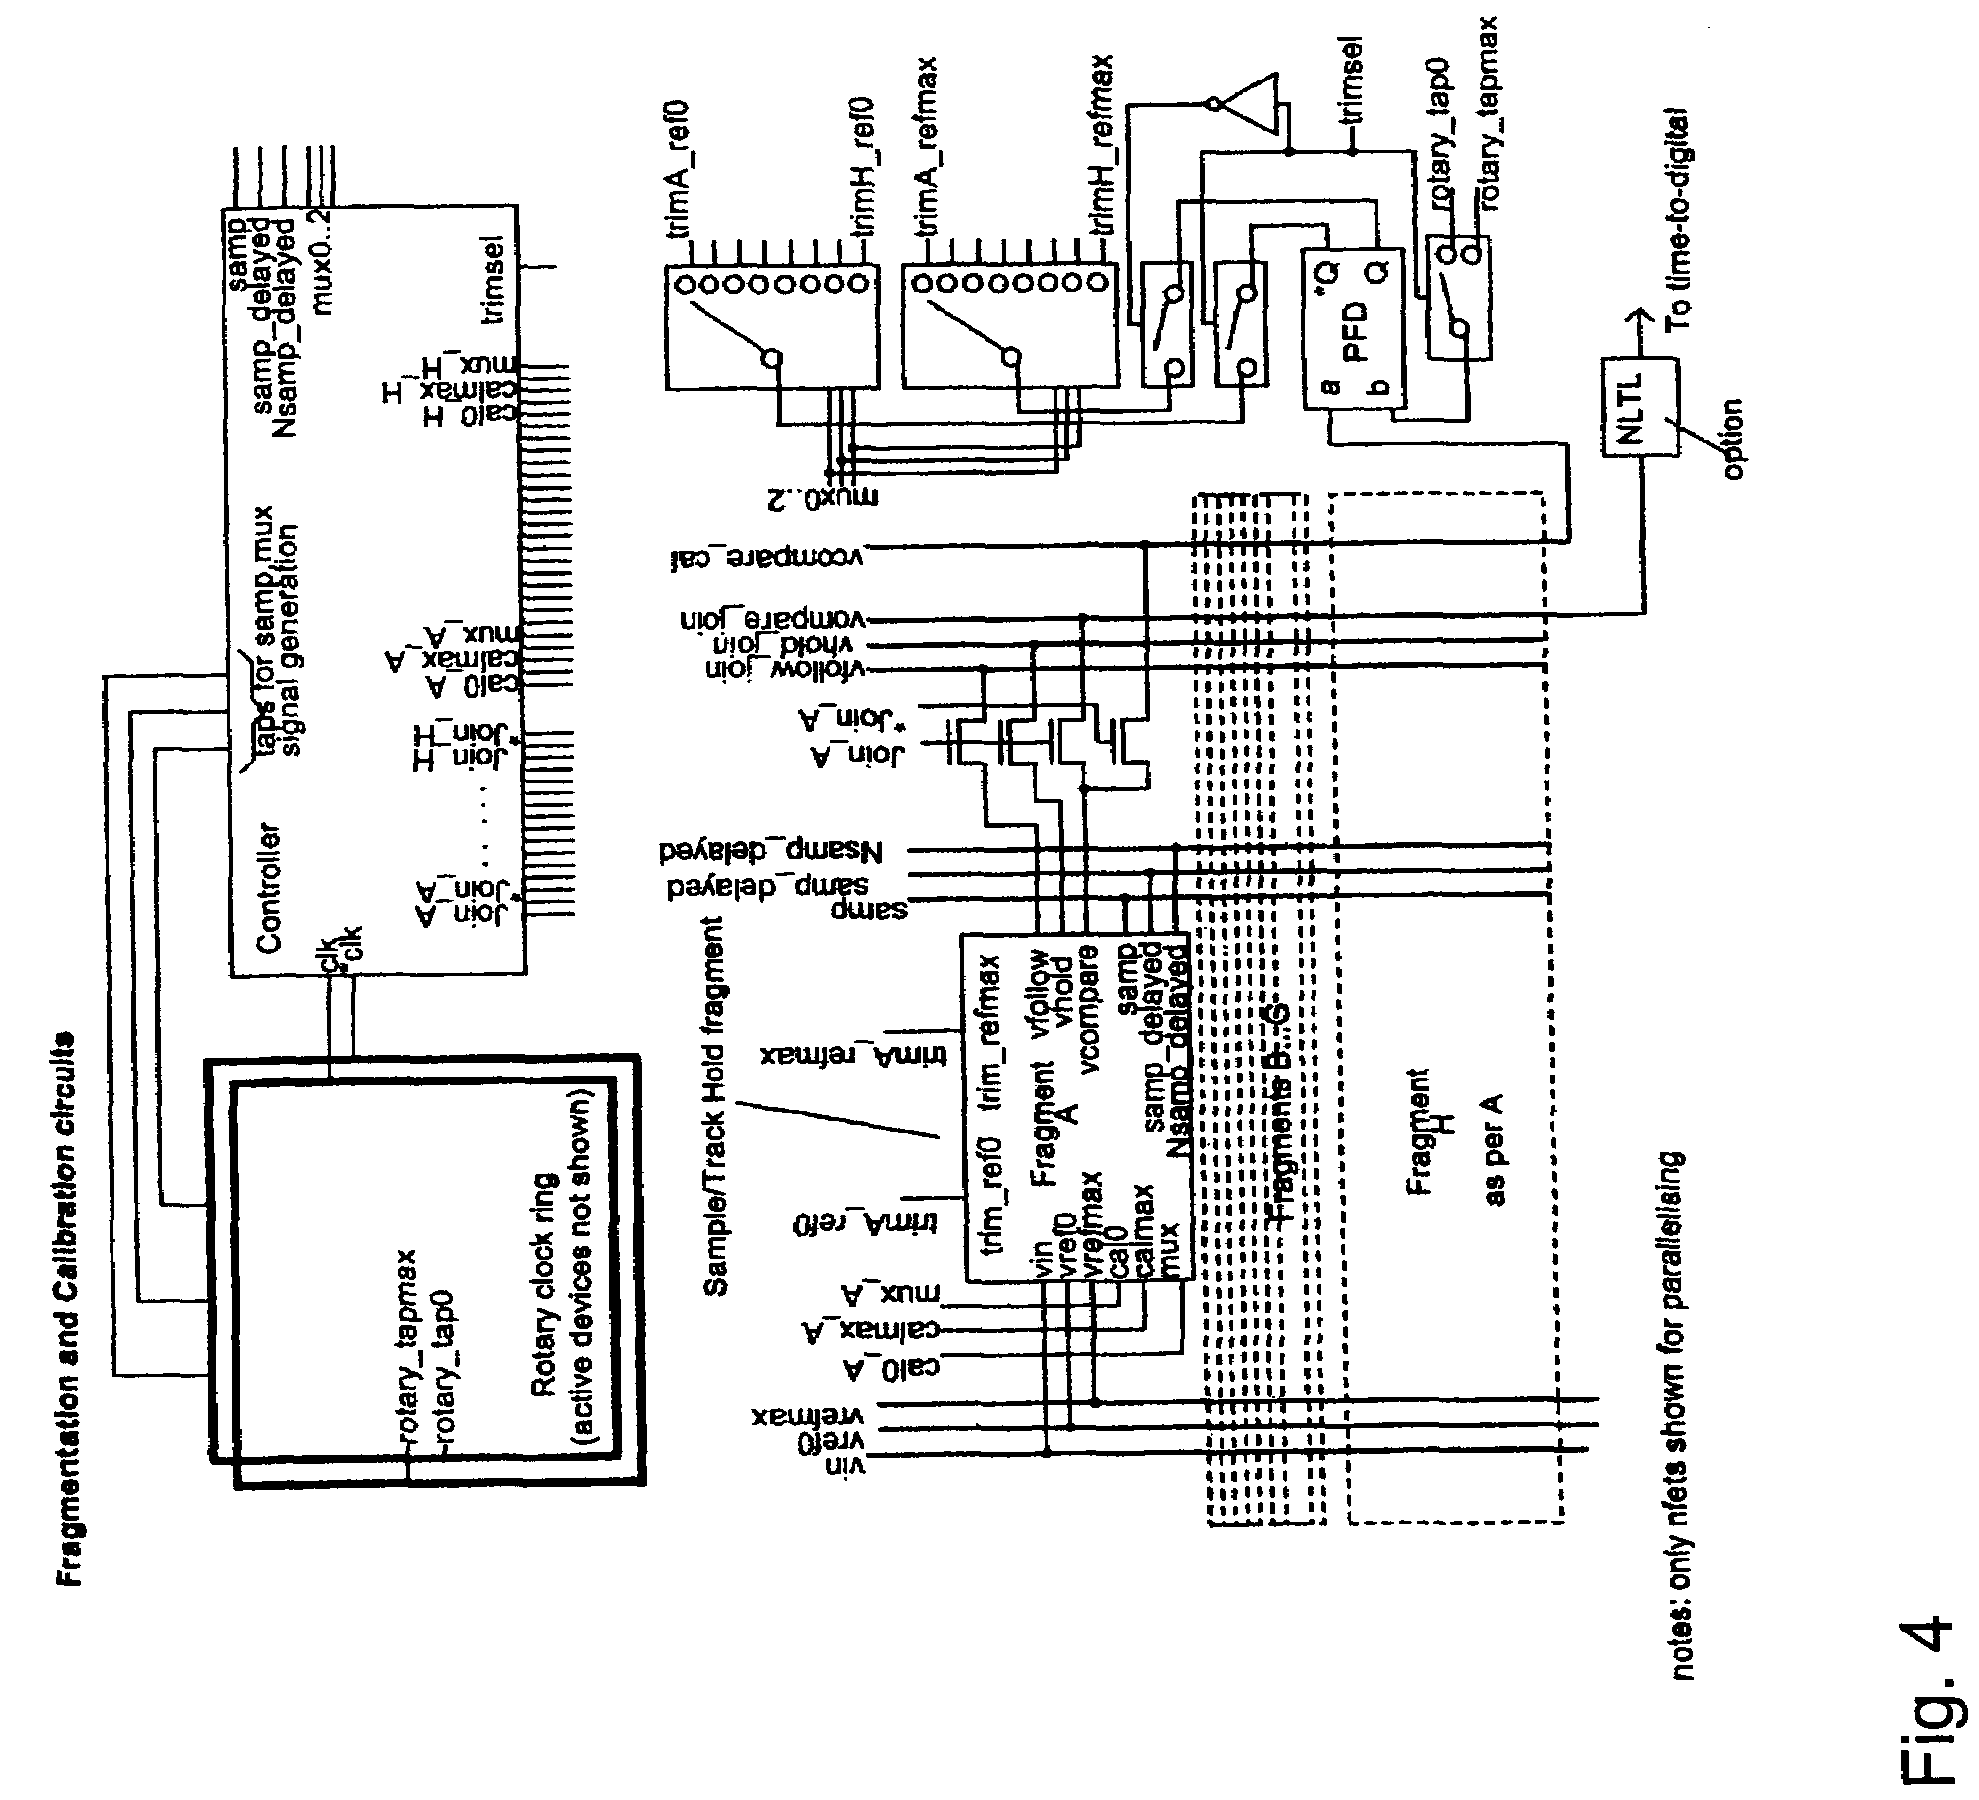 Circuit Inverter moreover US6763057 moreover US7085335 in addition Operational  lifier Integrator additionally Operational  lifier basics 19490. on circuit integrator response